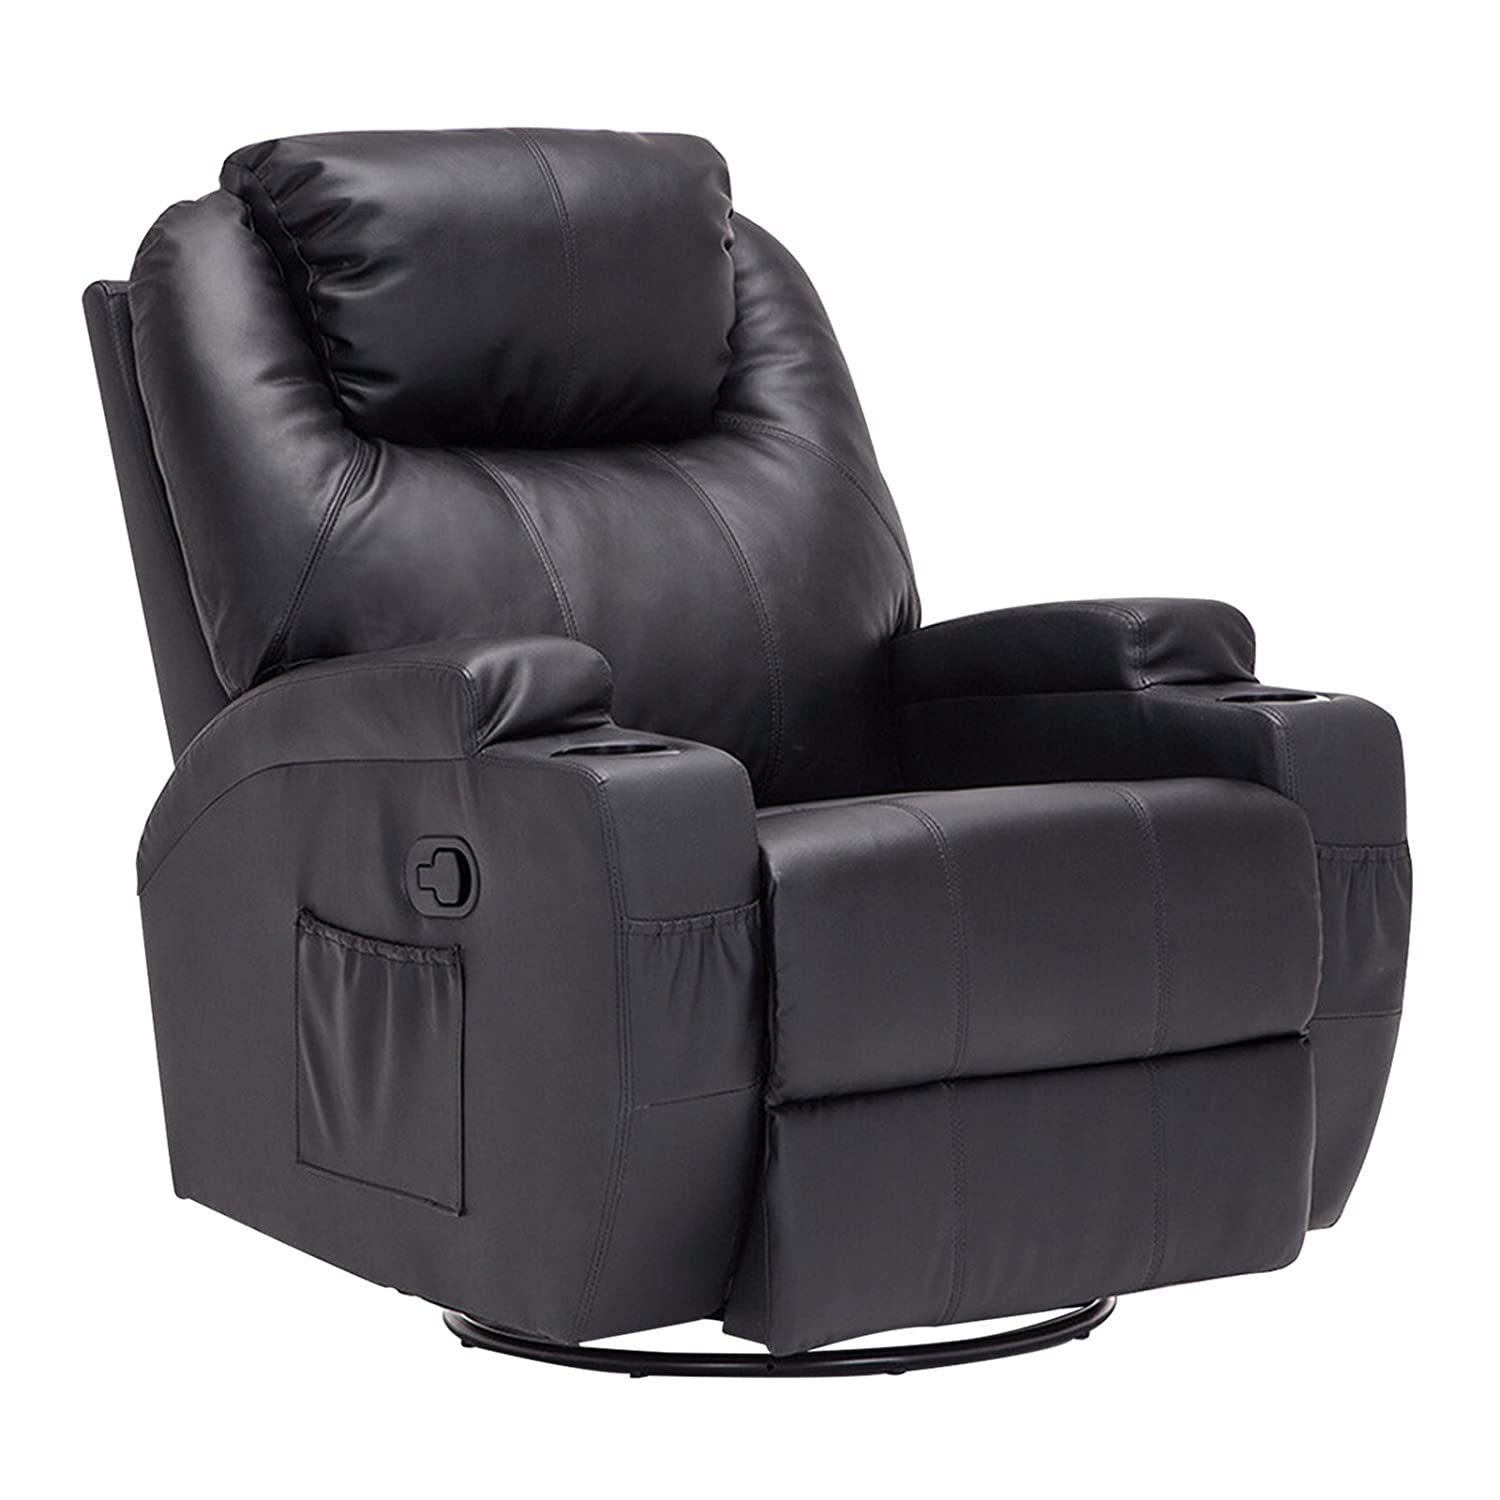 product recliner room leather cheap furniture change to chairs dark fabric click brick living chair angus item look image brown the reclining